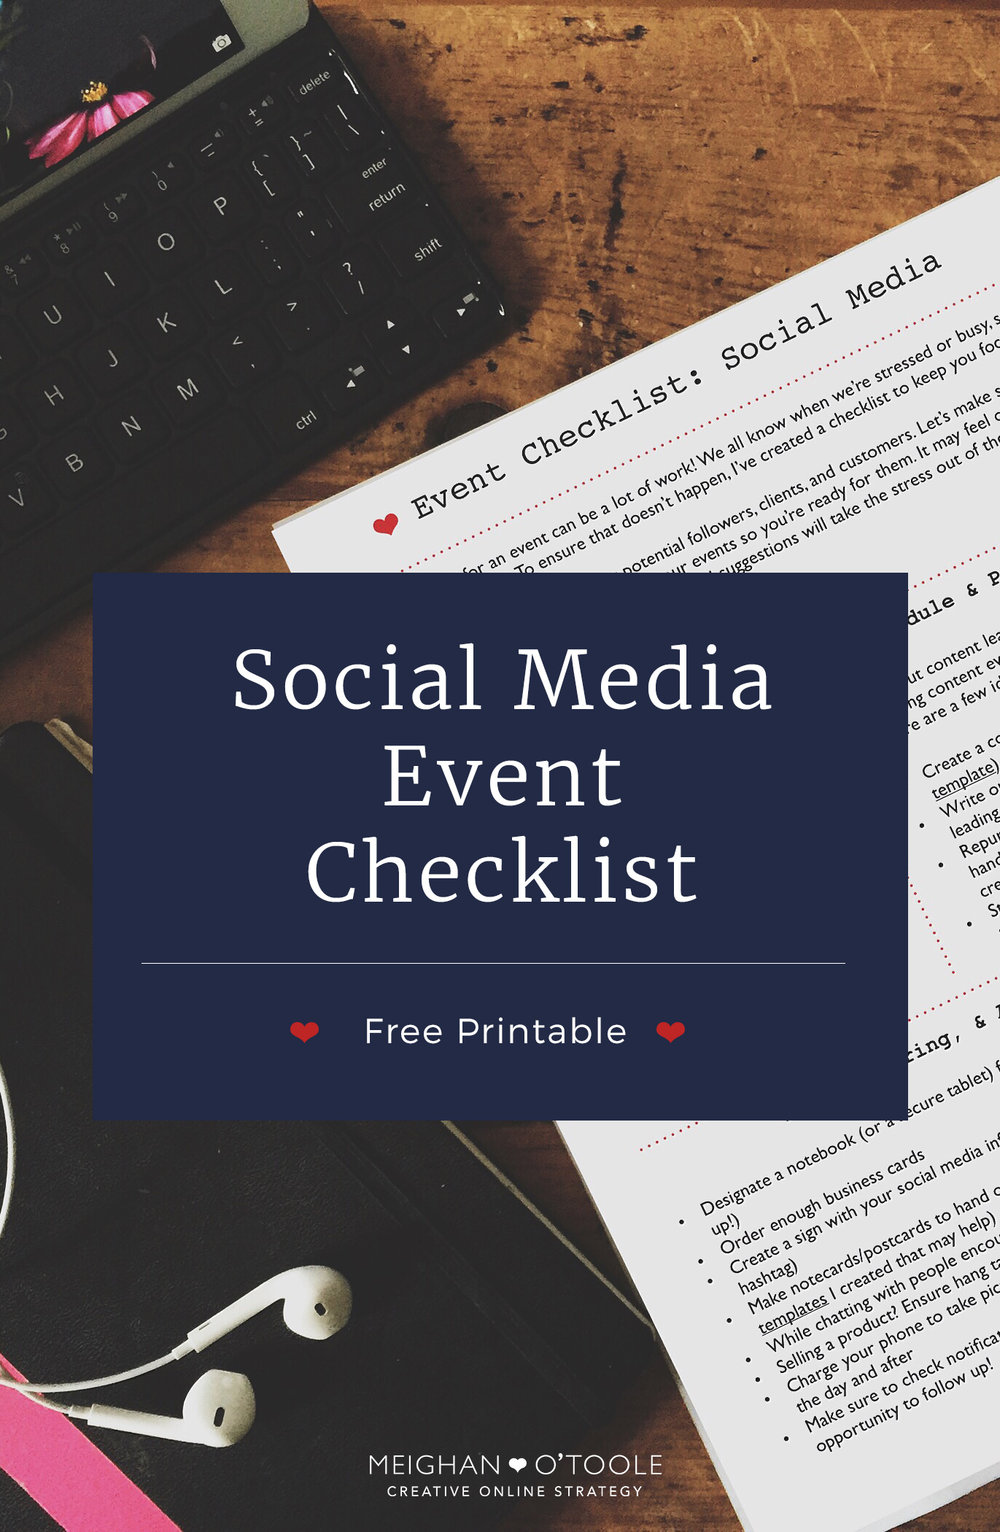 Free Printable: Event Checklist for Social Media